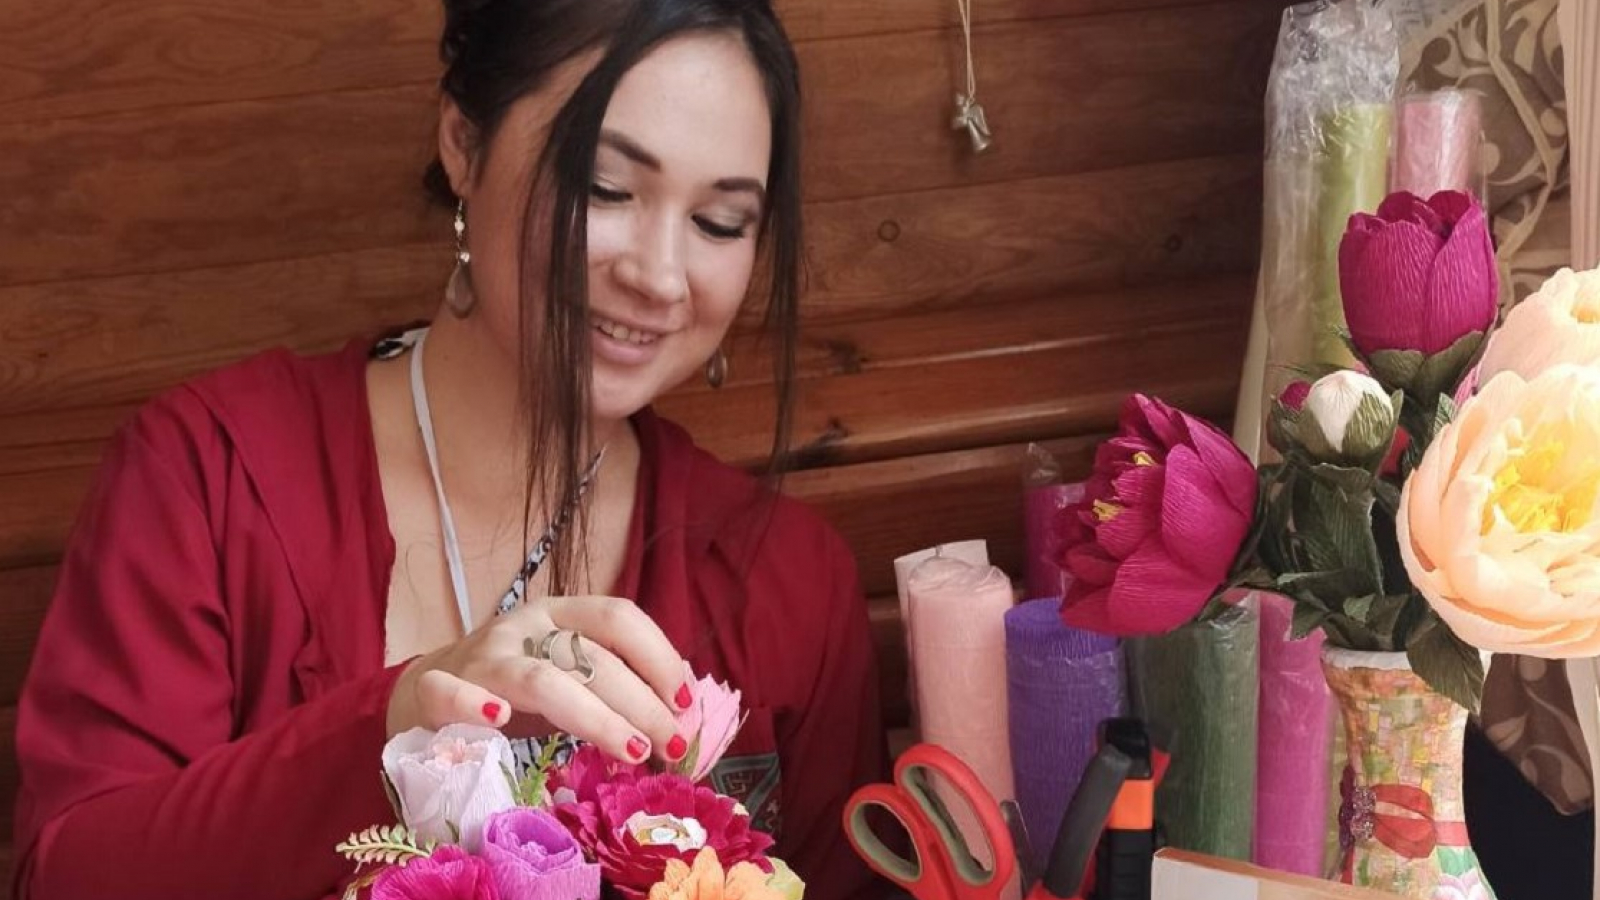 Valeriya Golovach making a gift bouquet with sweets